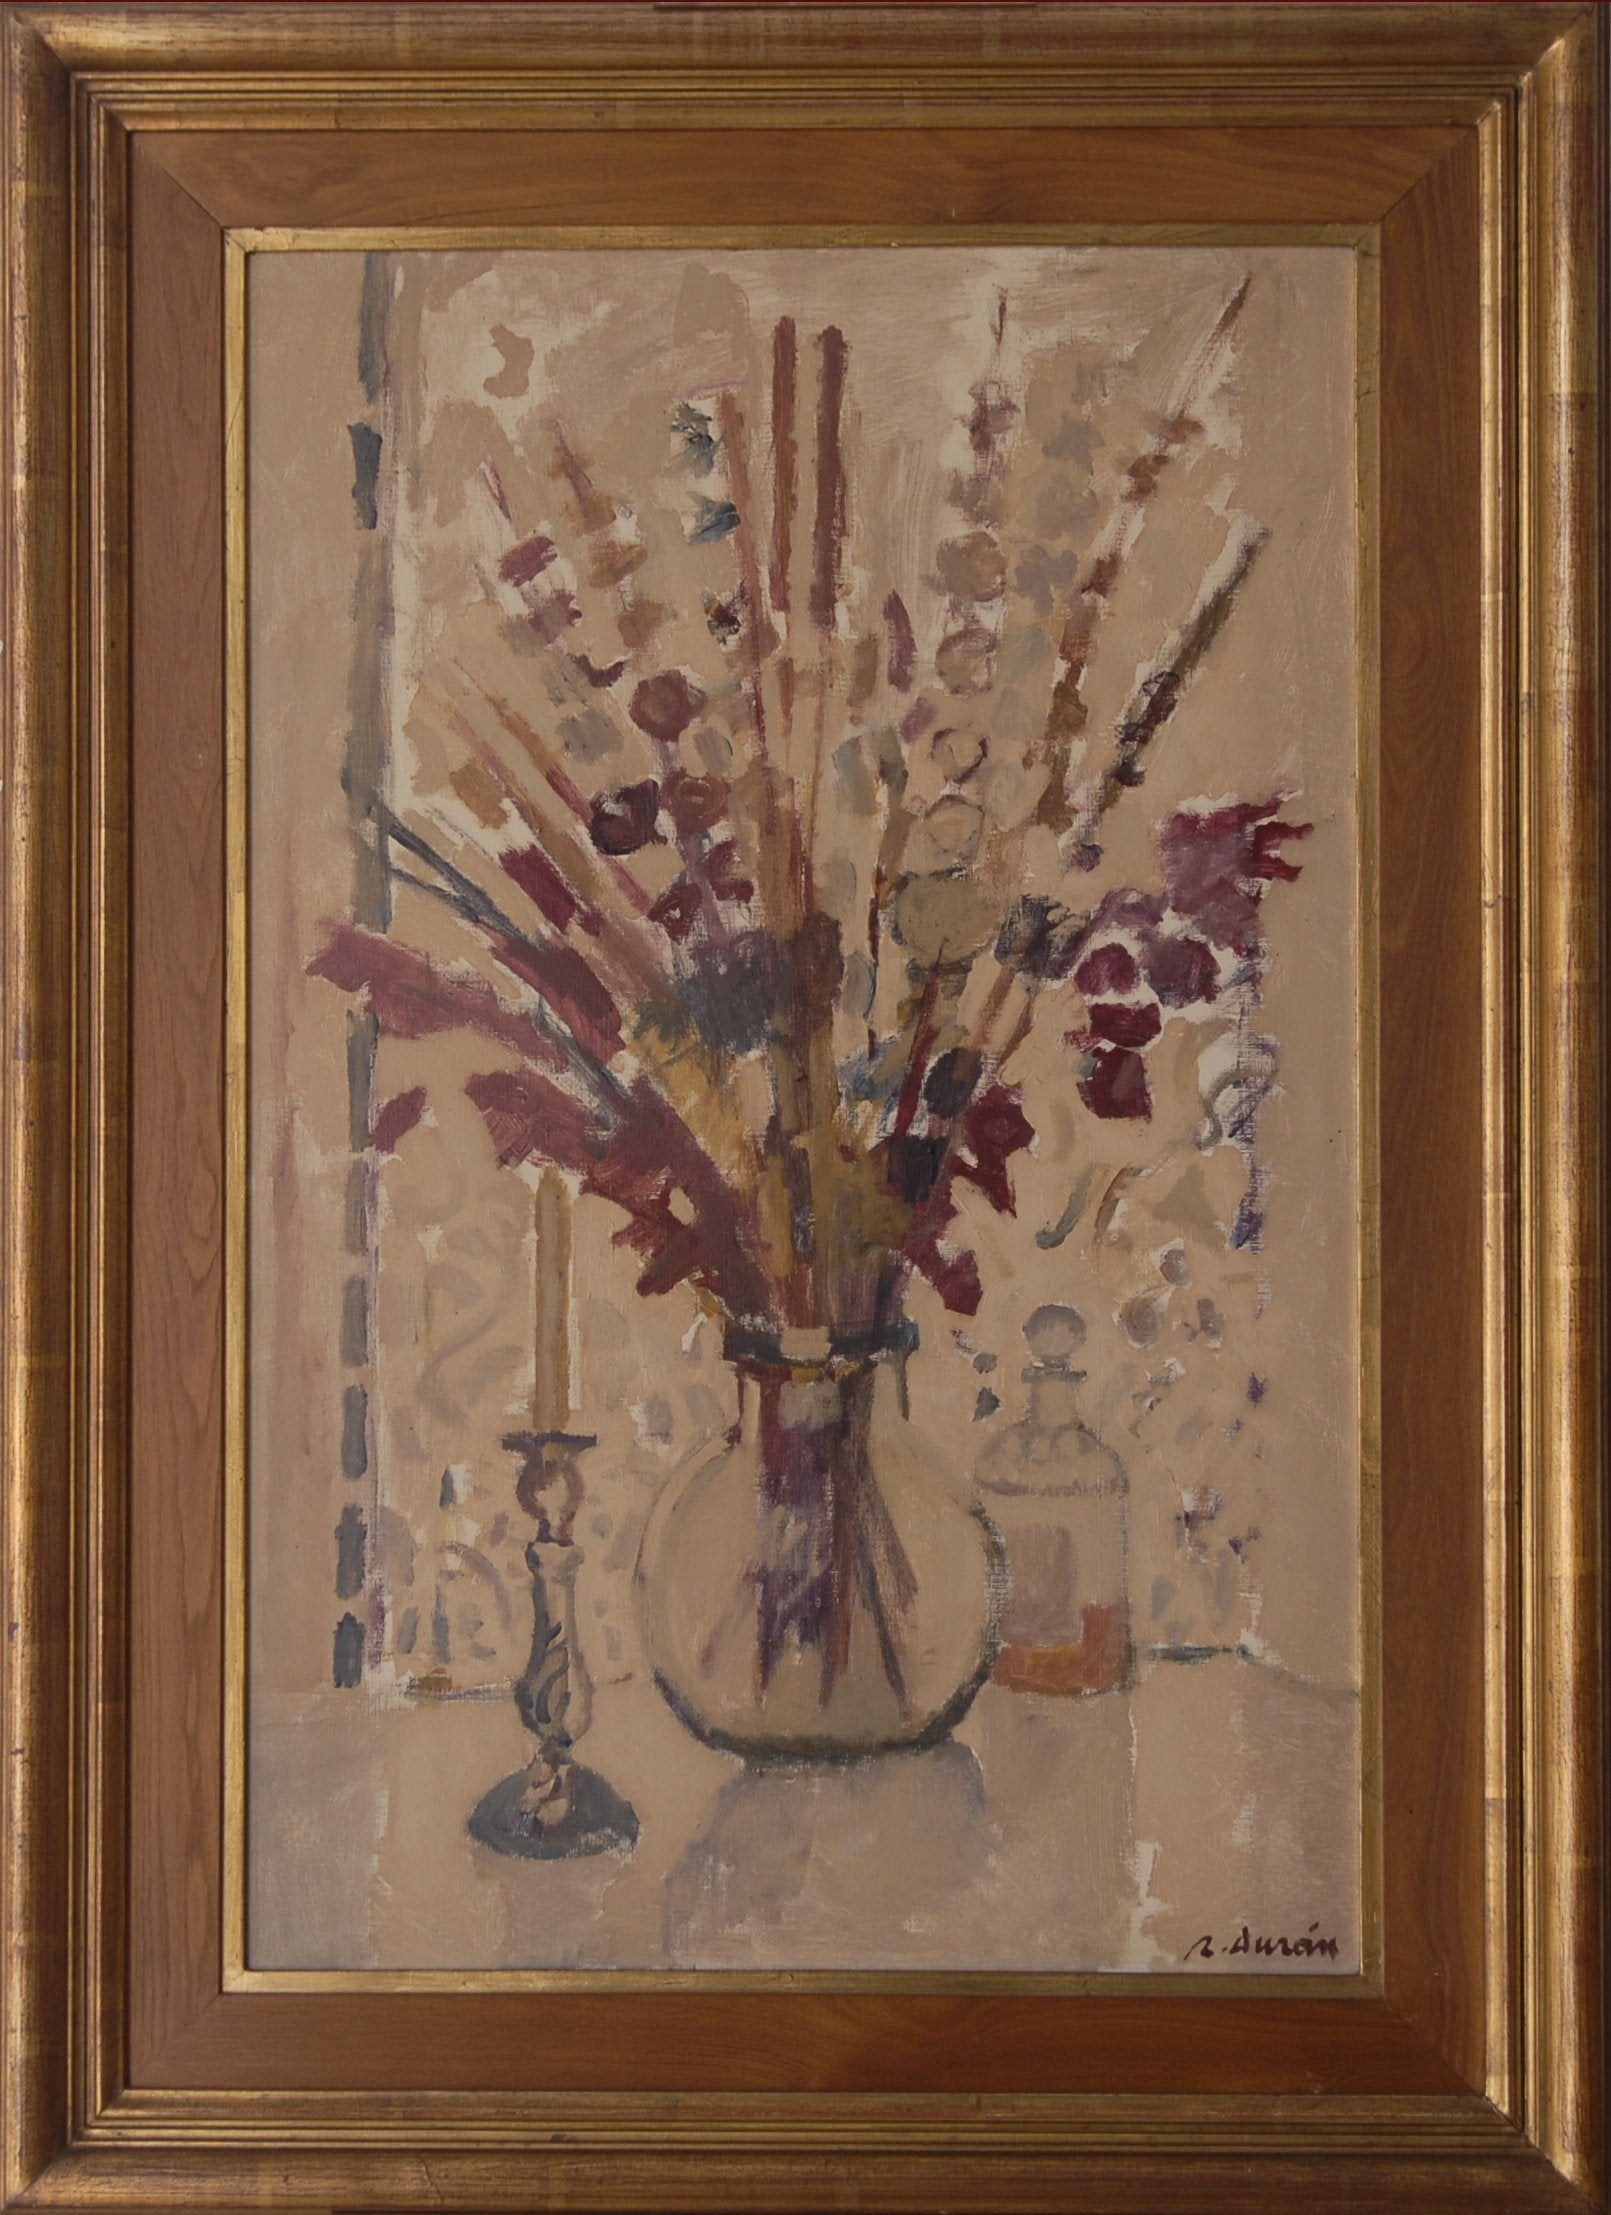 Flowers In A Vase by Rafael Duran_Framed